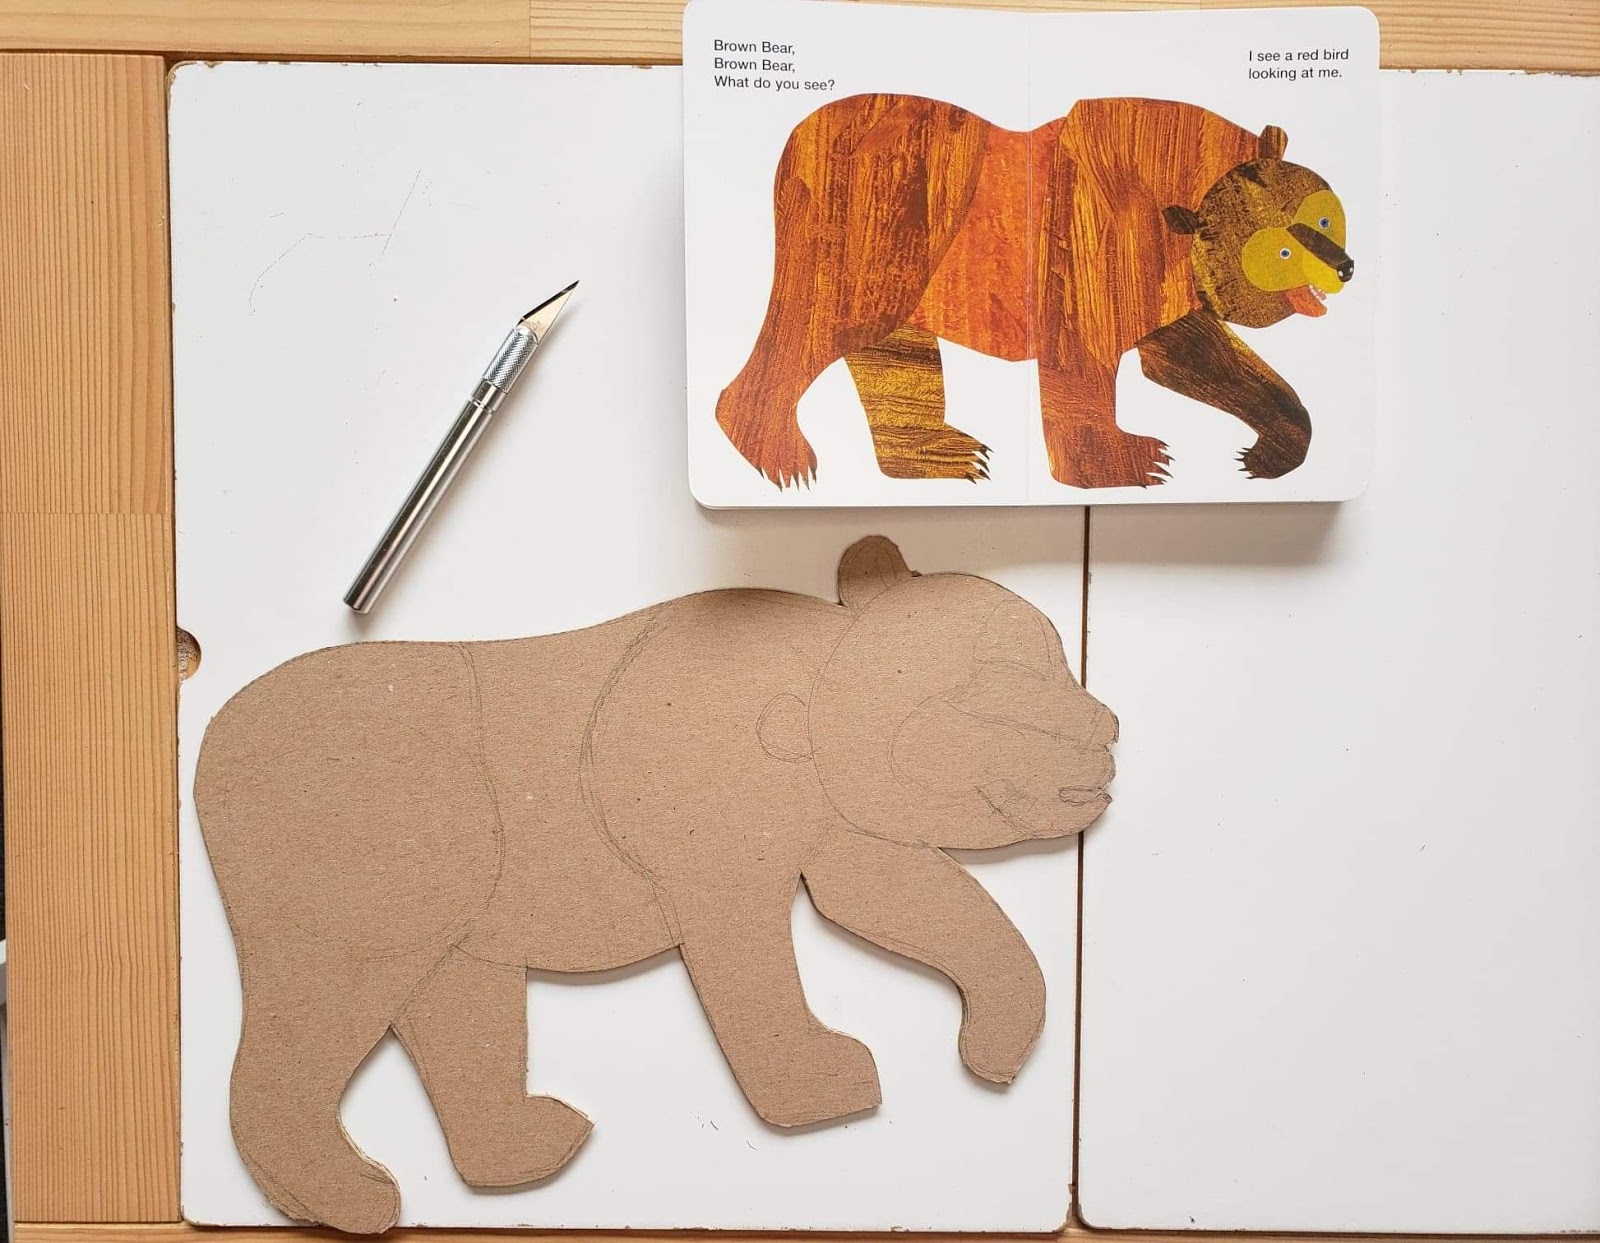 brown bear brown bear what do you see sensory puzzle